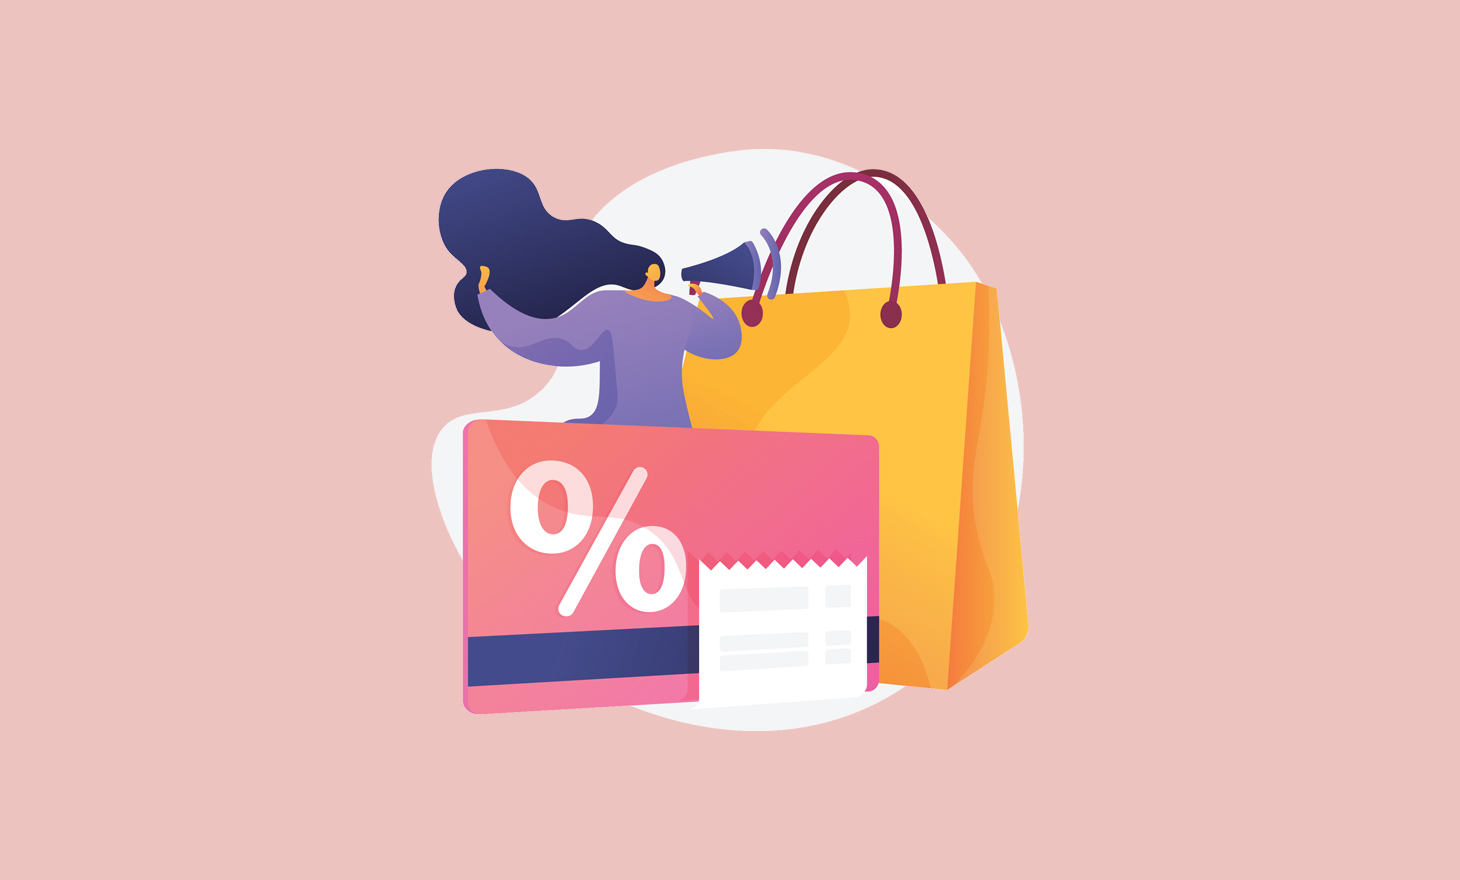 How to exclude discount codes on sale items in Shopify